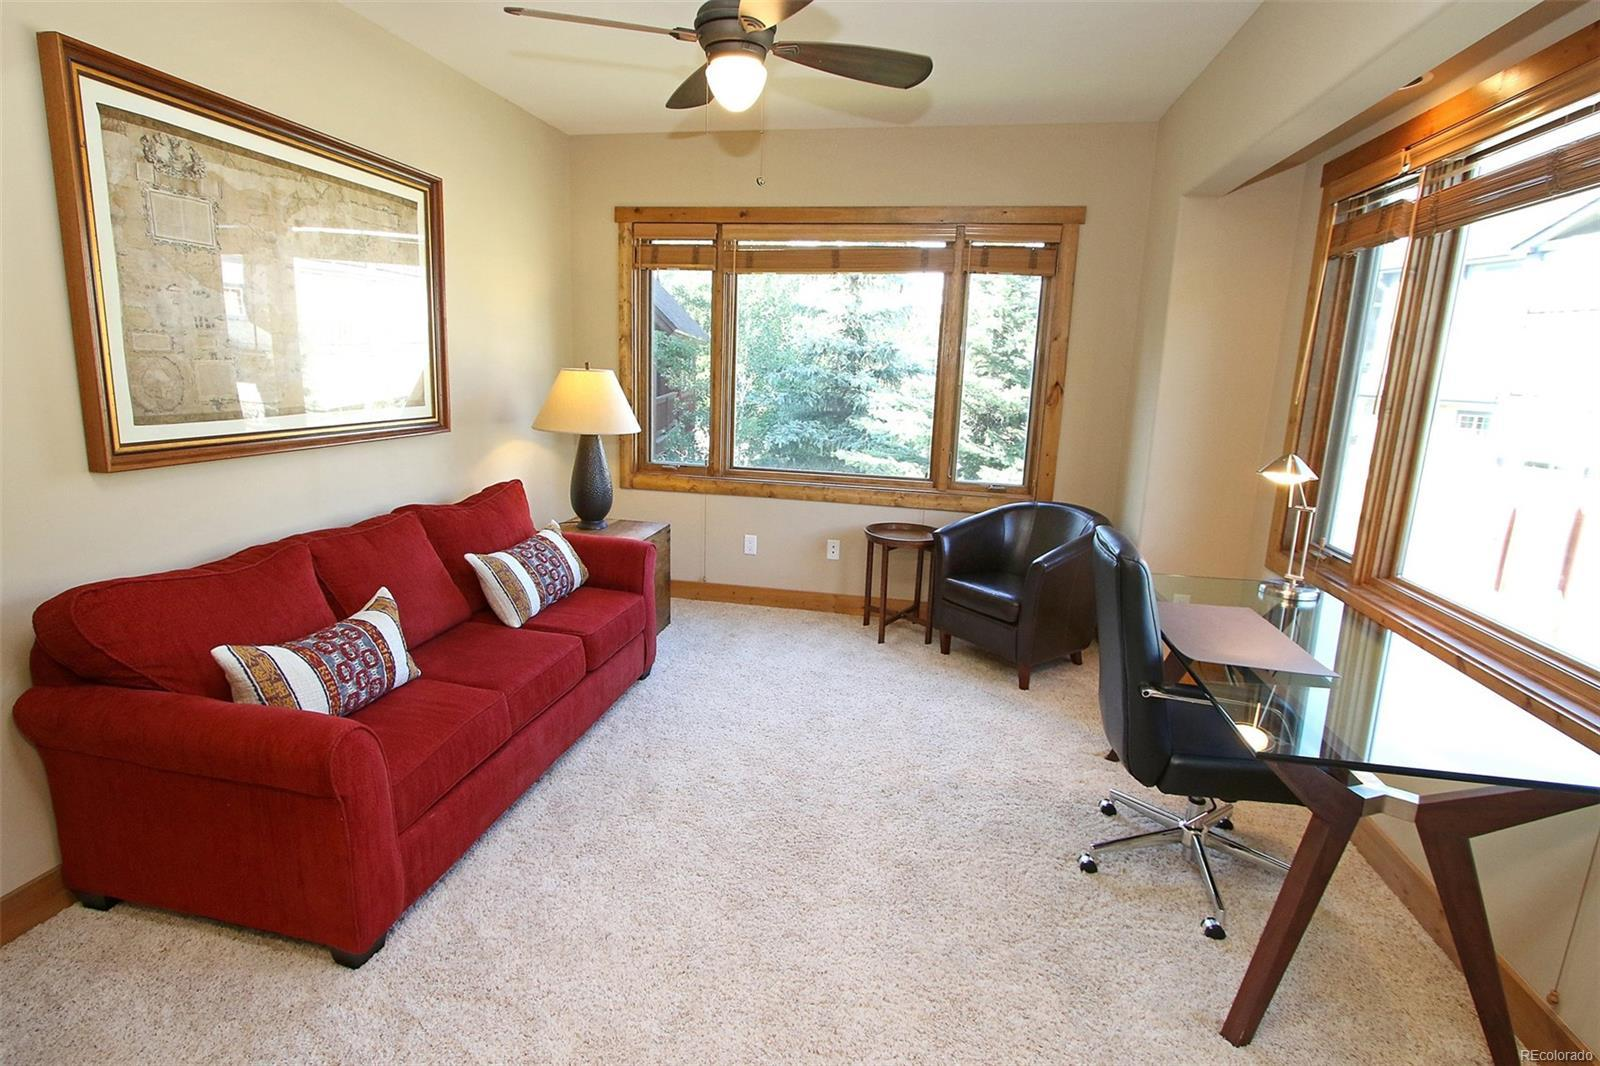 Sofa, Arm Chair, Ceiling Fan, Desk with Chair, and Windows.